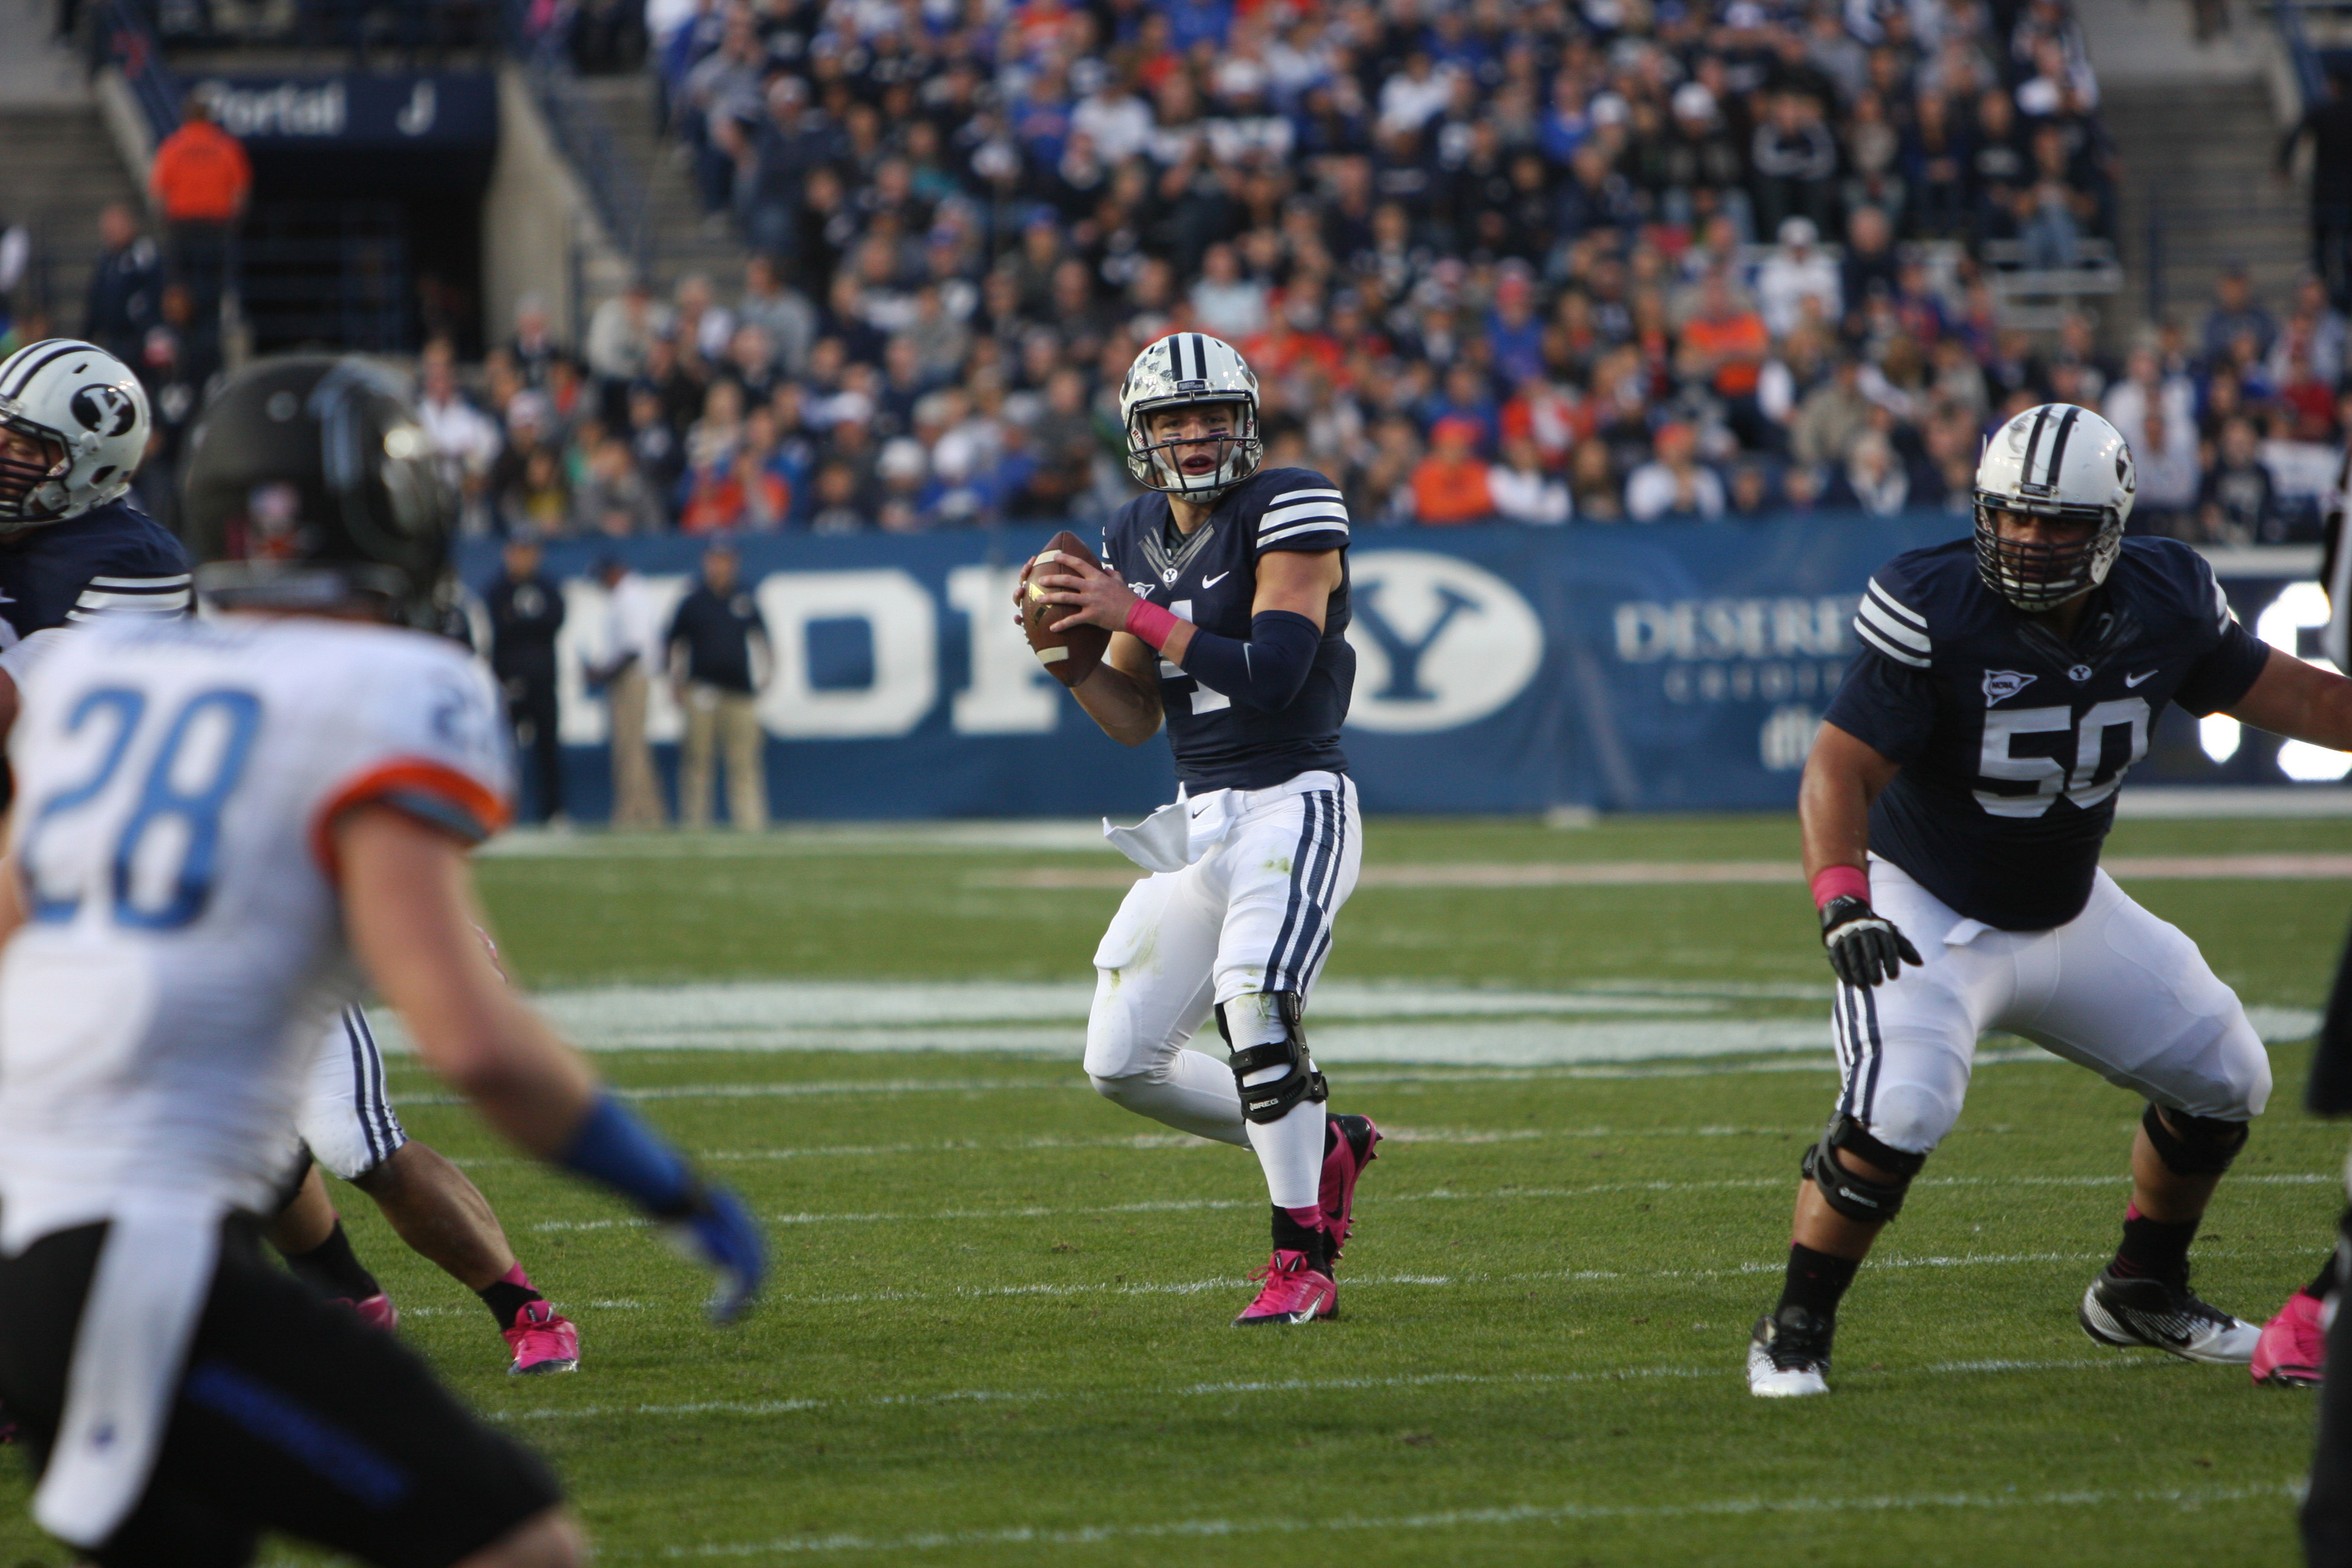 Taysom Hill looks down field for an open receiver against Boise State last season. The Cougars will travel to Boise to face the Broncos on Oct. 24. (Natalie Stoker)